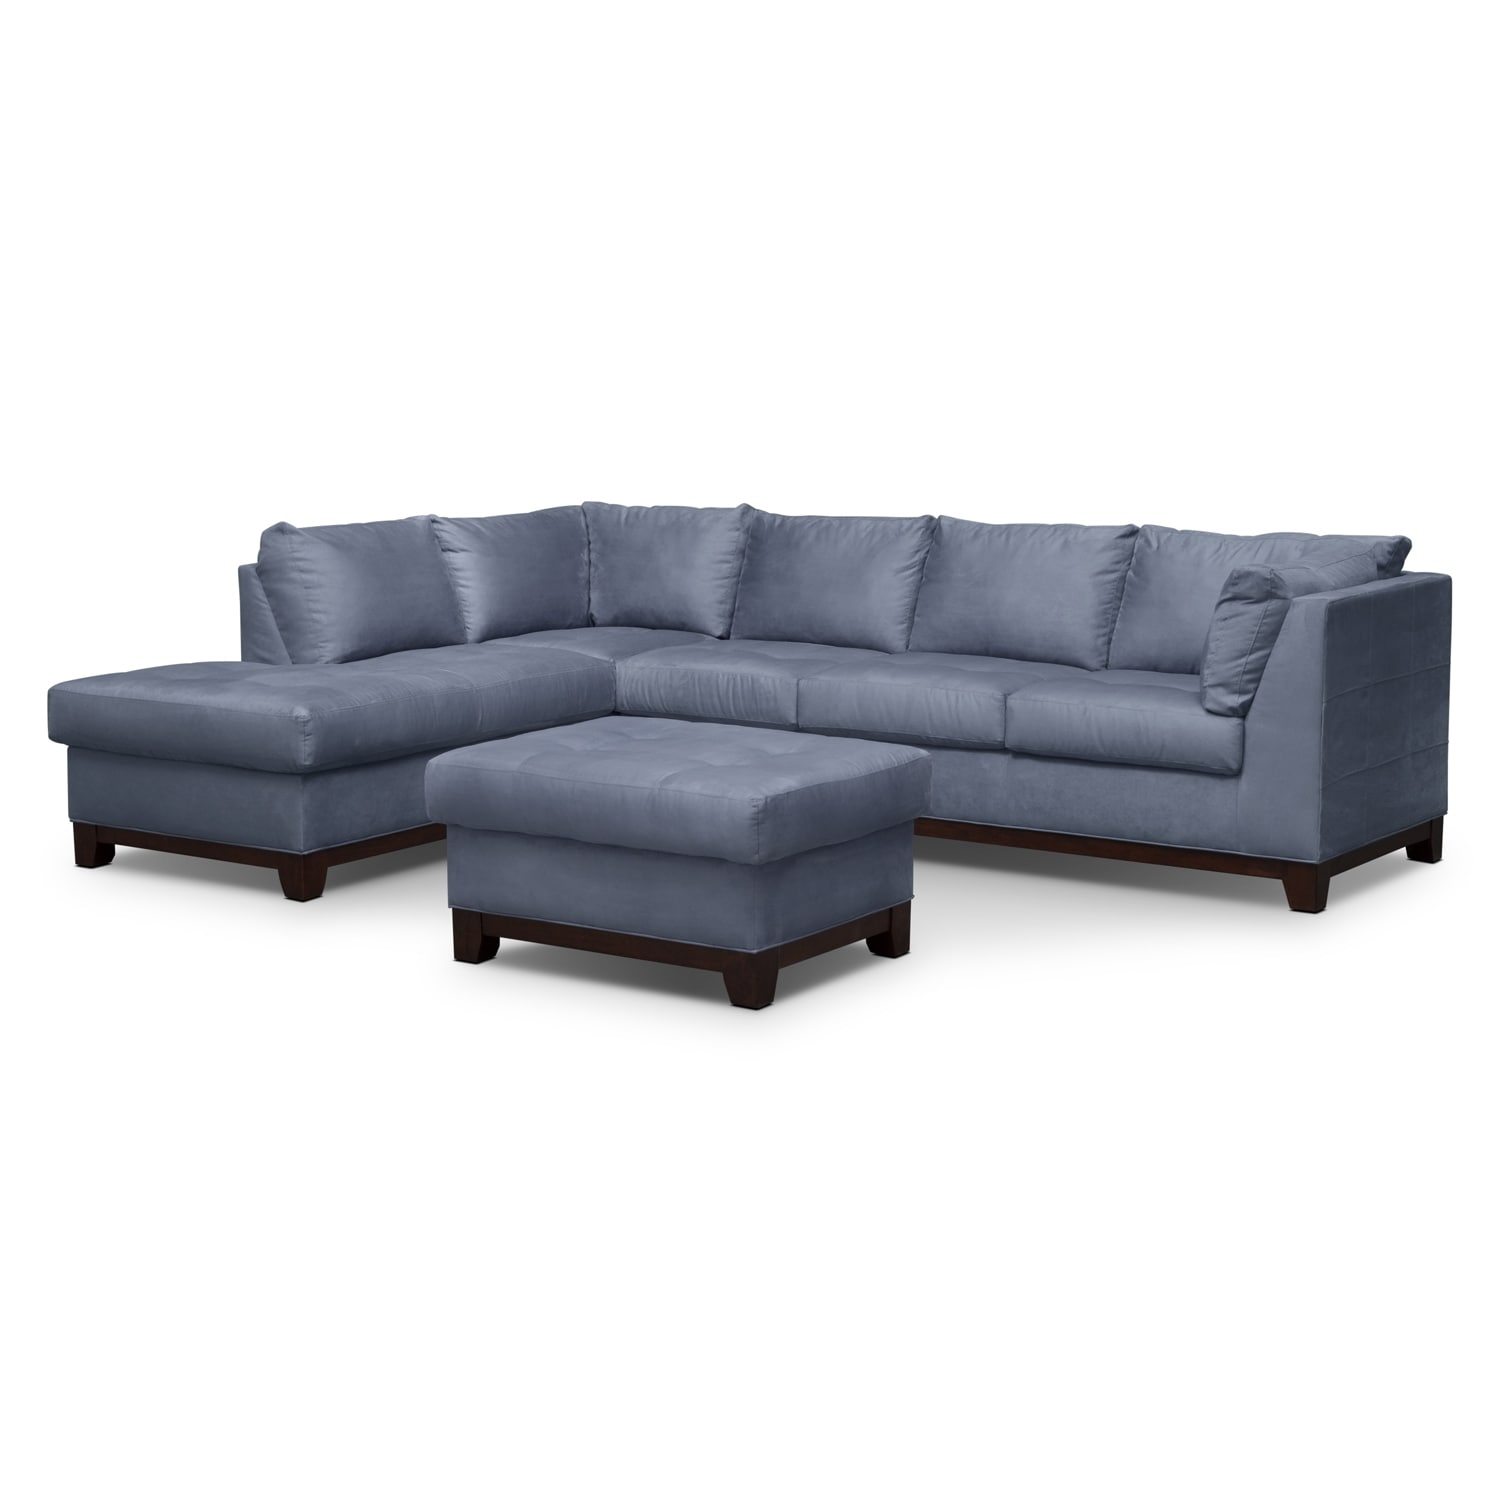 Living Room Furniture - Soho IV 2 Pc. Sectional (Reverse) and Ottoman